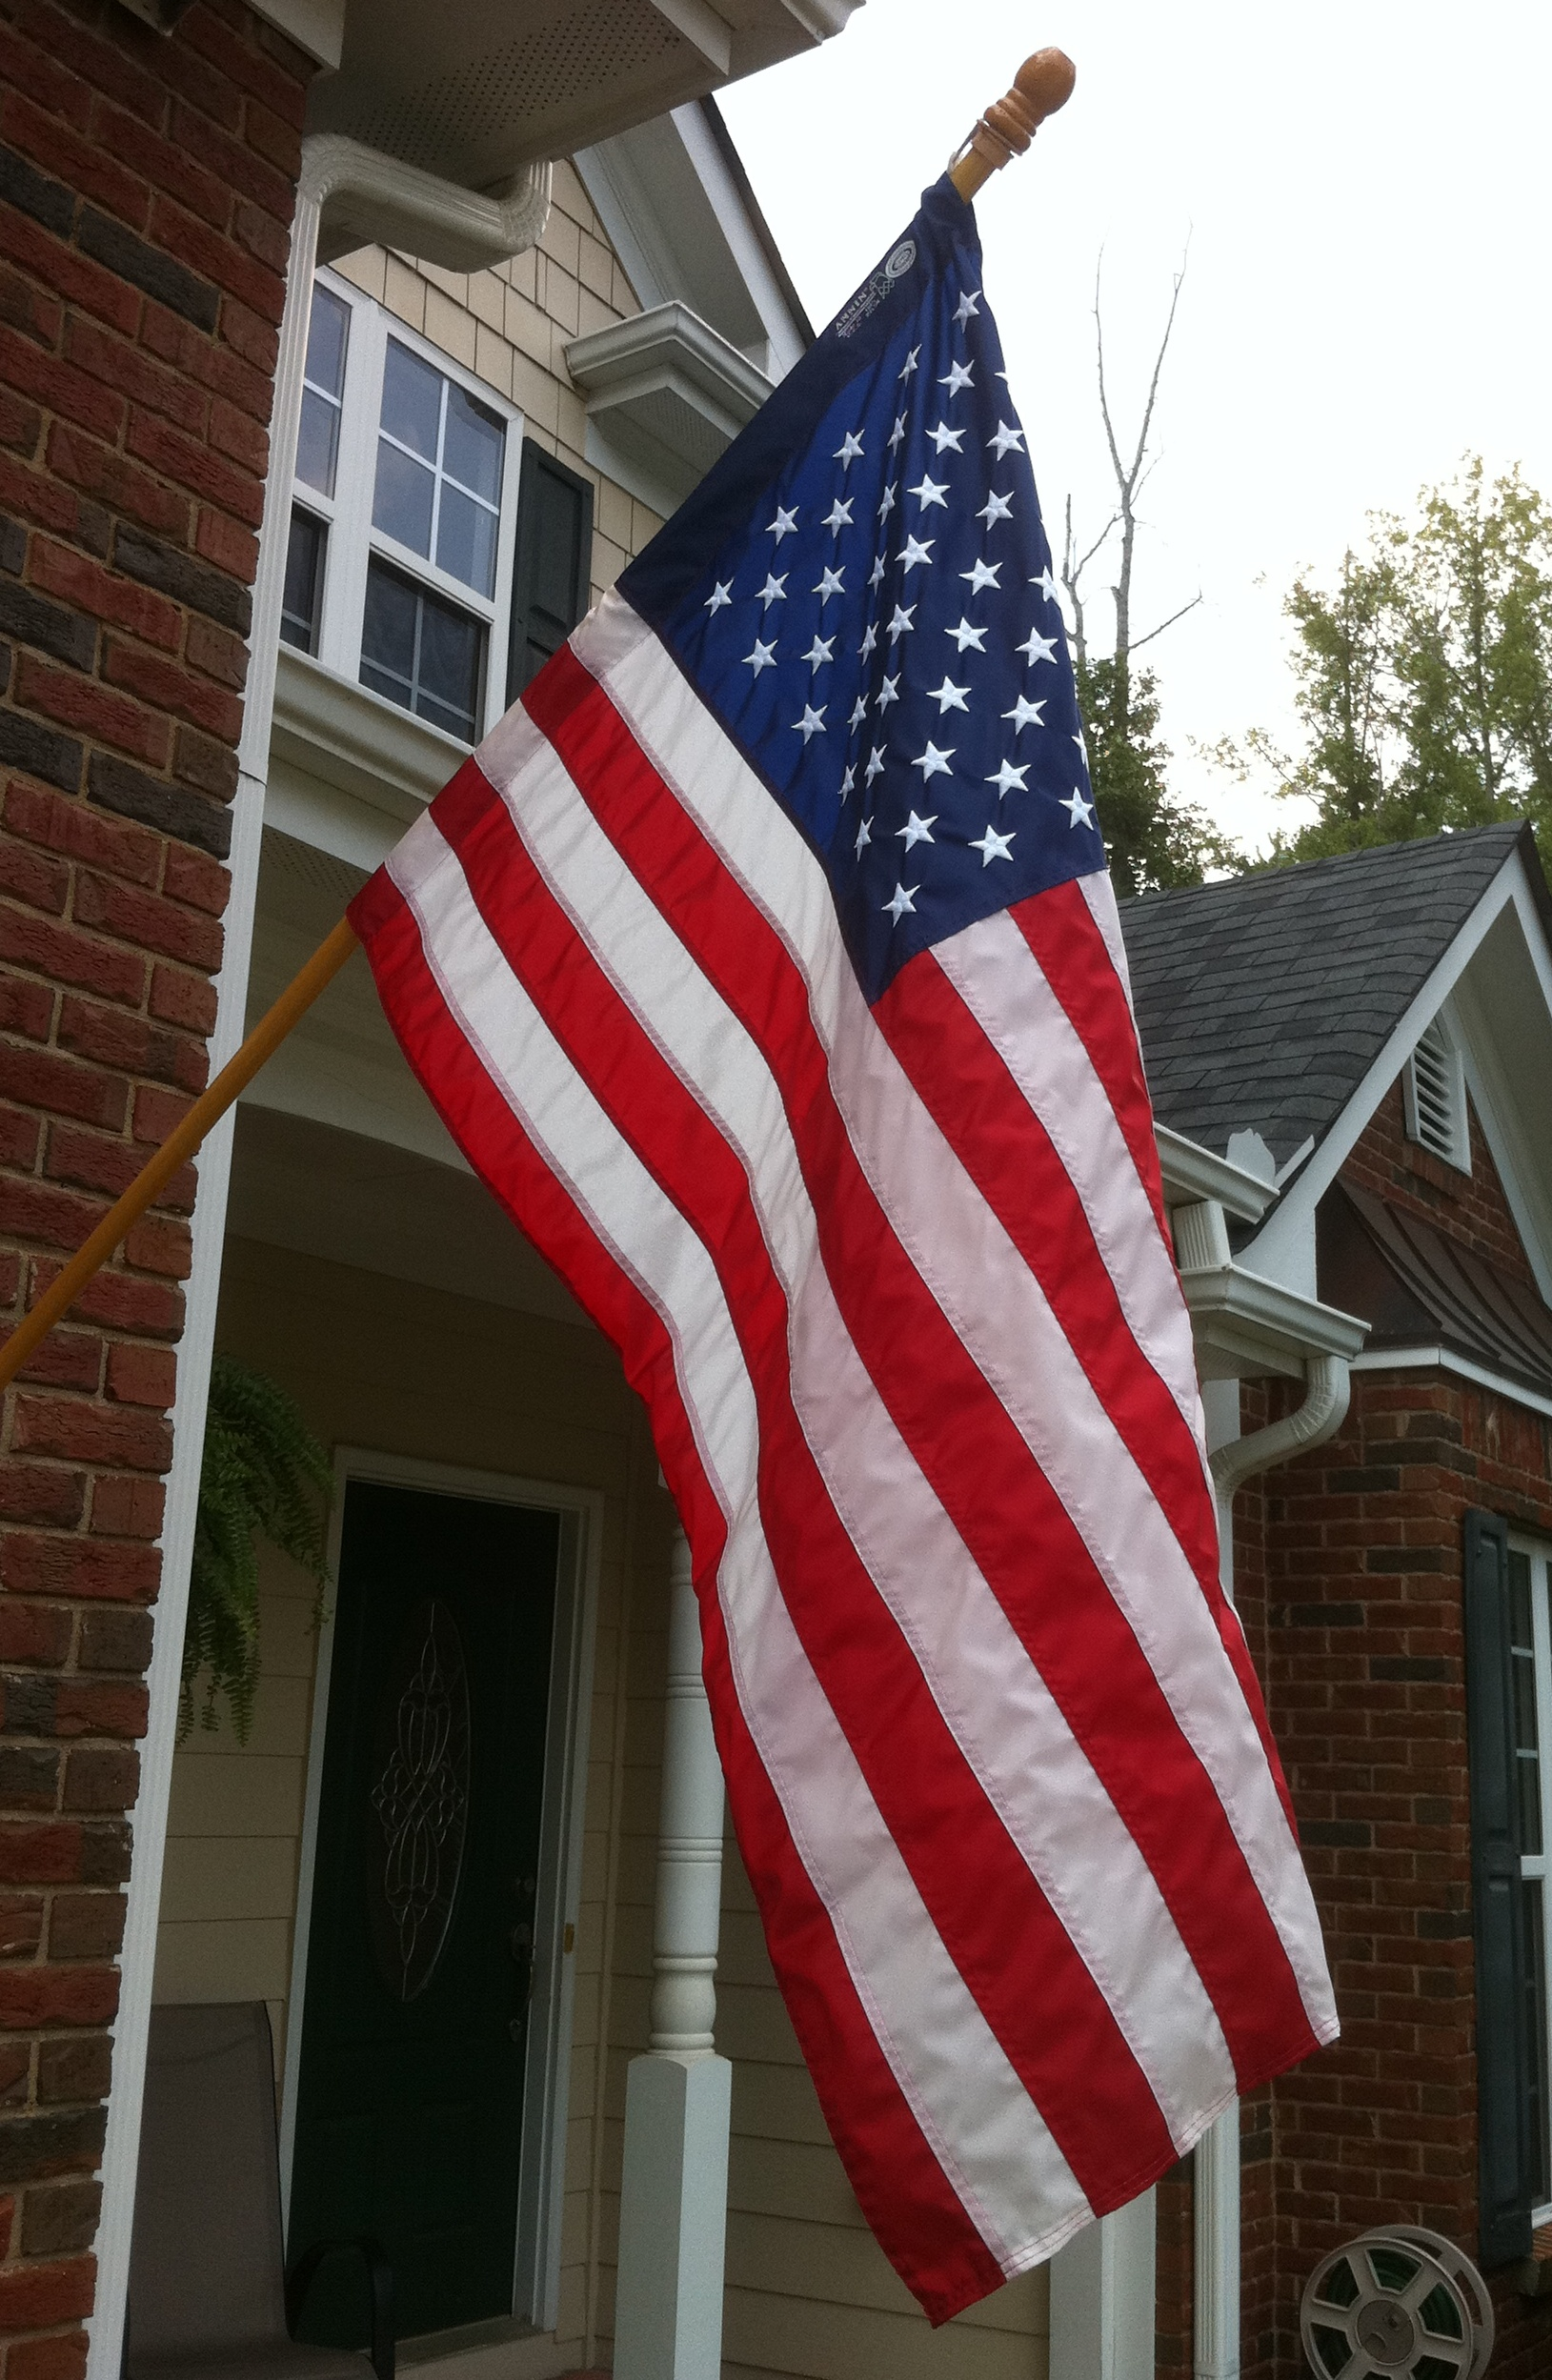 What You May Not Know About The Star Spangled Banner